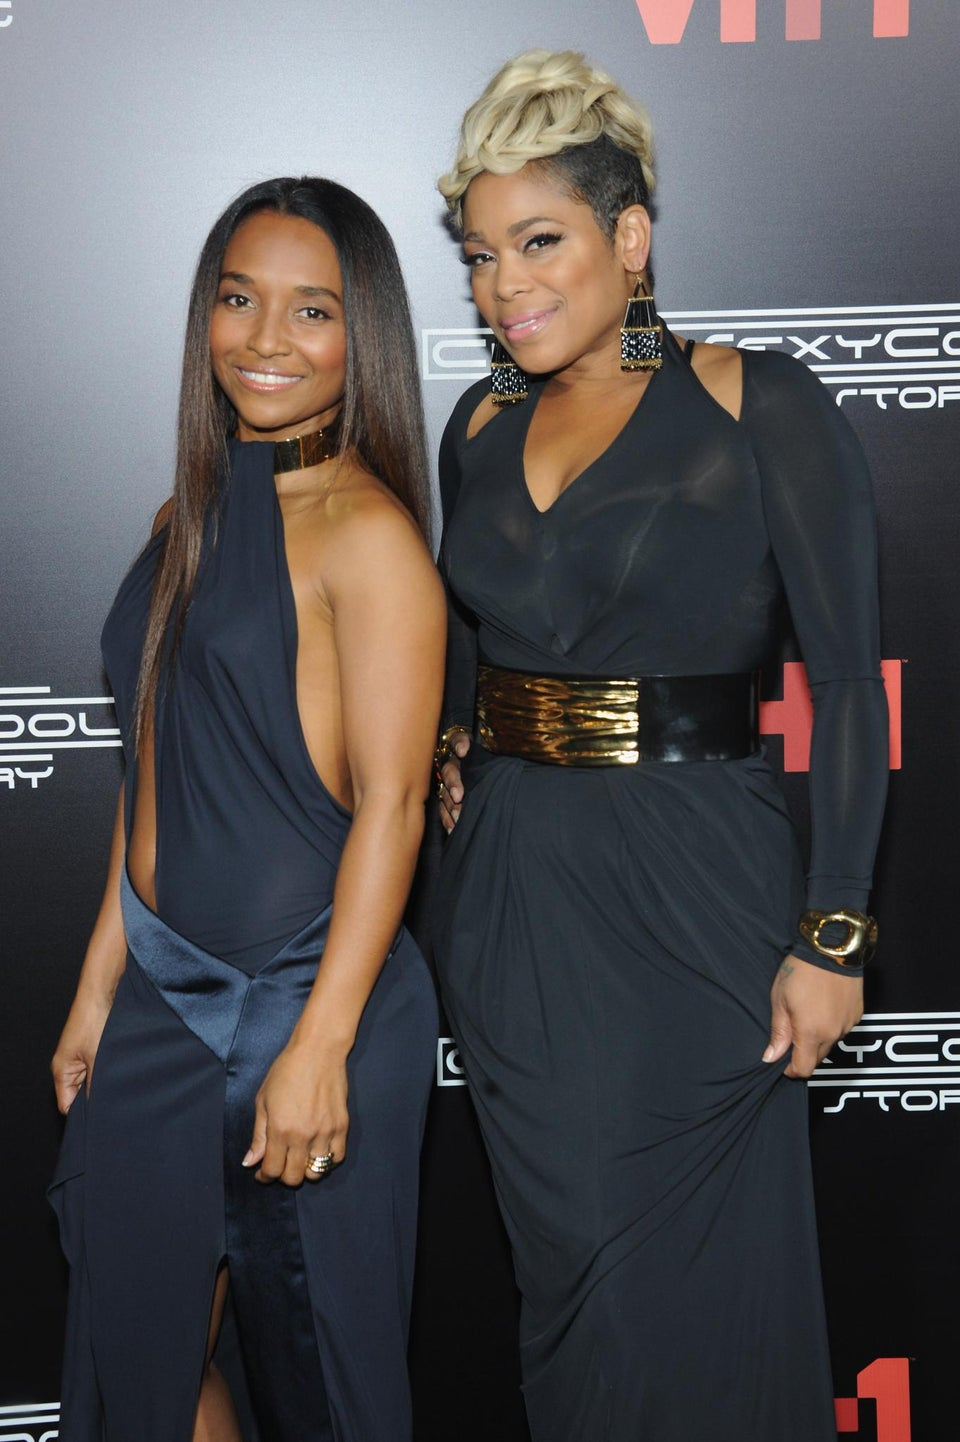 TLC Kickstarter Donors Upset With Delayed Music